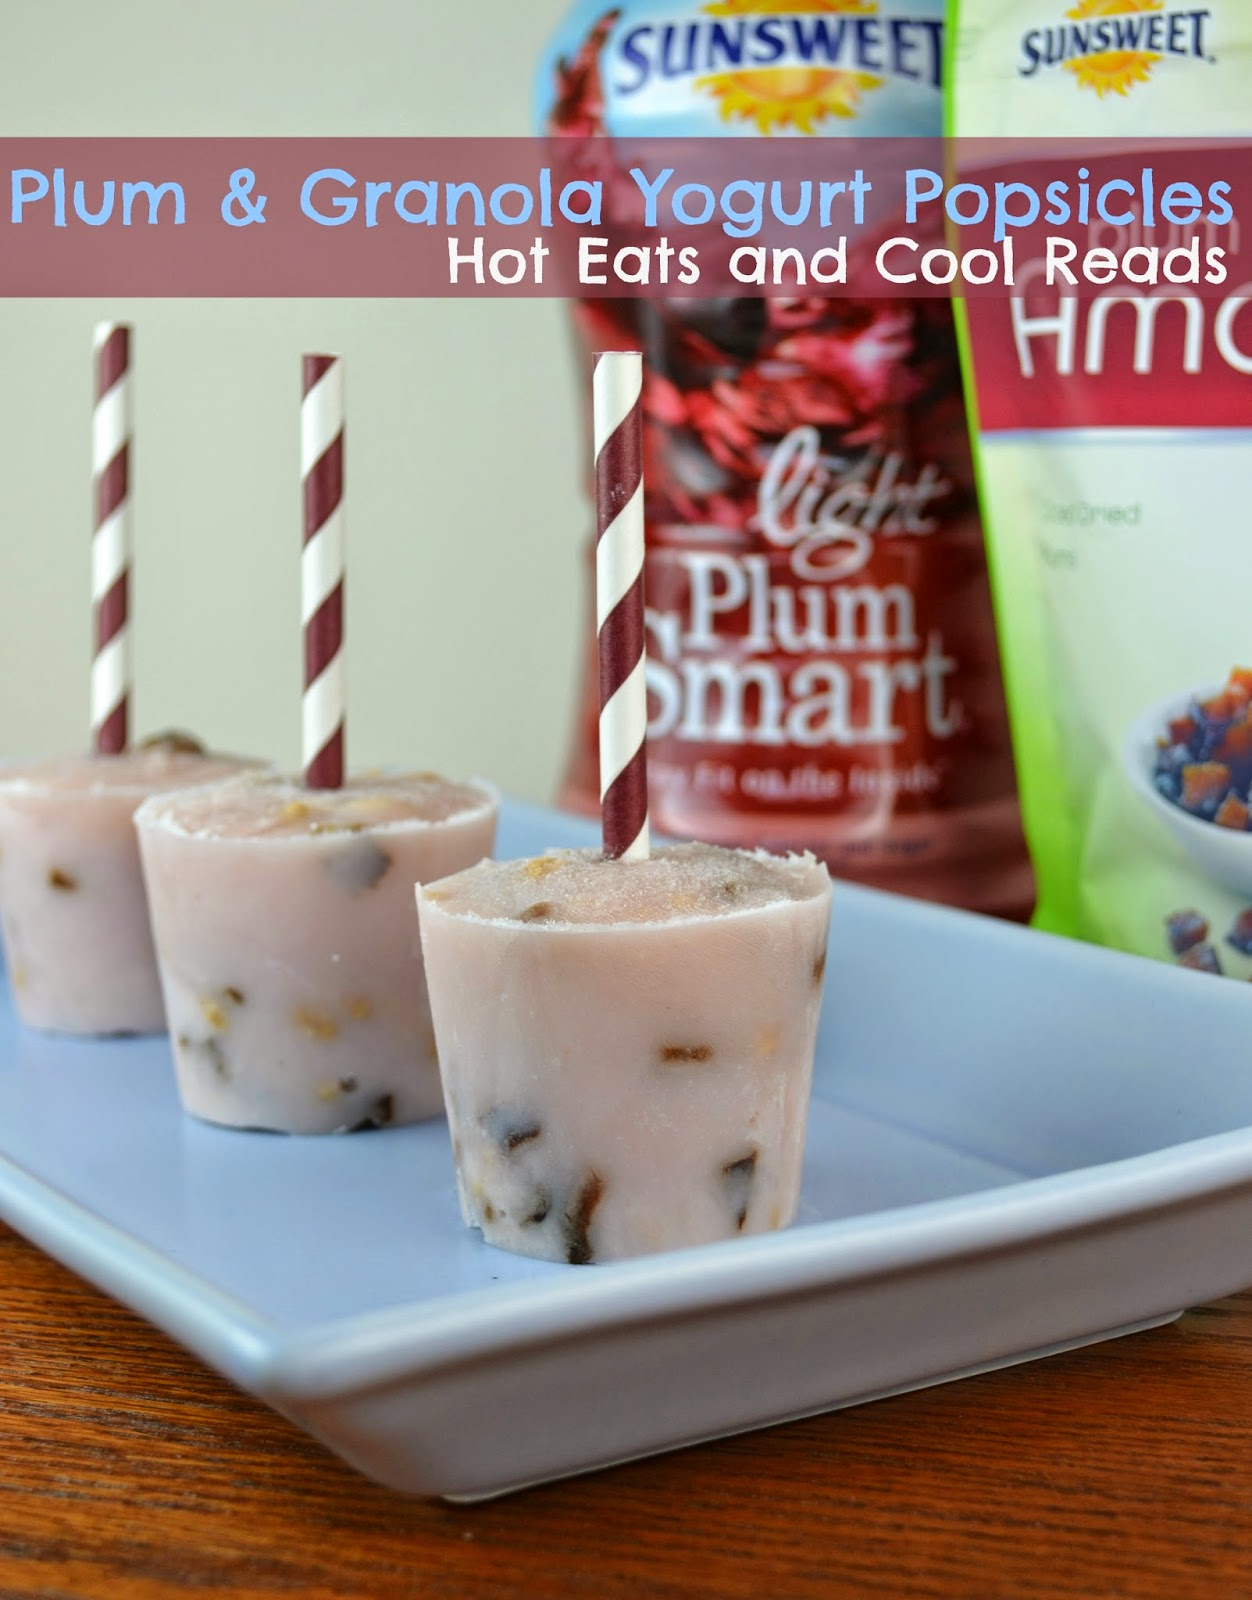 Plum and Granola Yogurt Popsicles from Hot Eats and Cool Reads! Adults and kids both love them. They are healthy, and great for after school or an anytime snack!